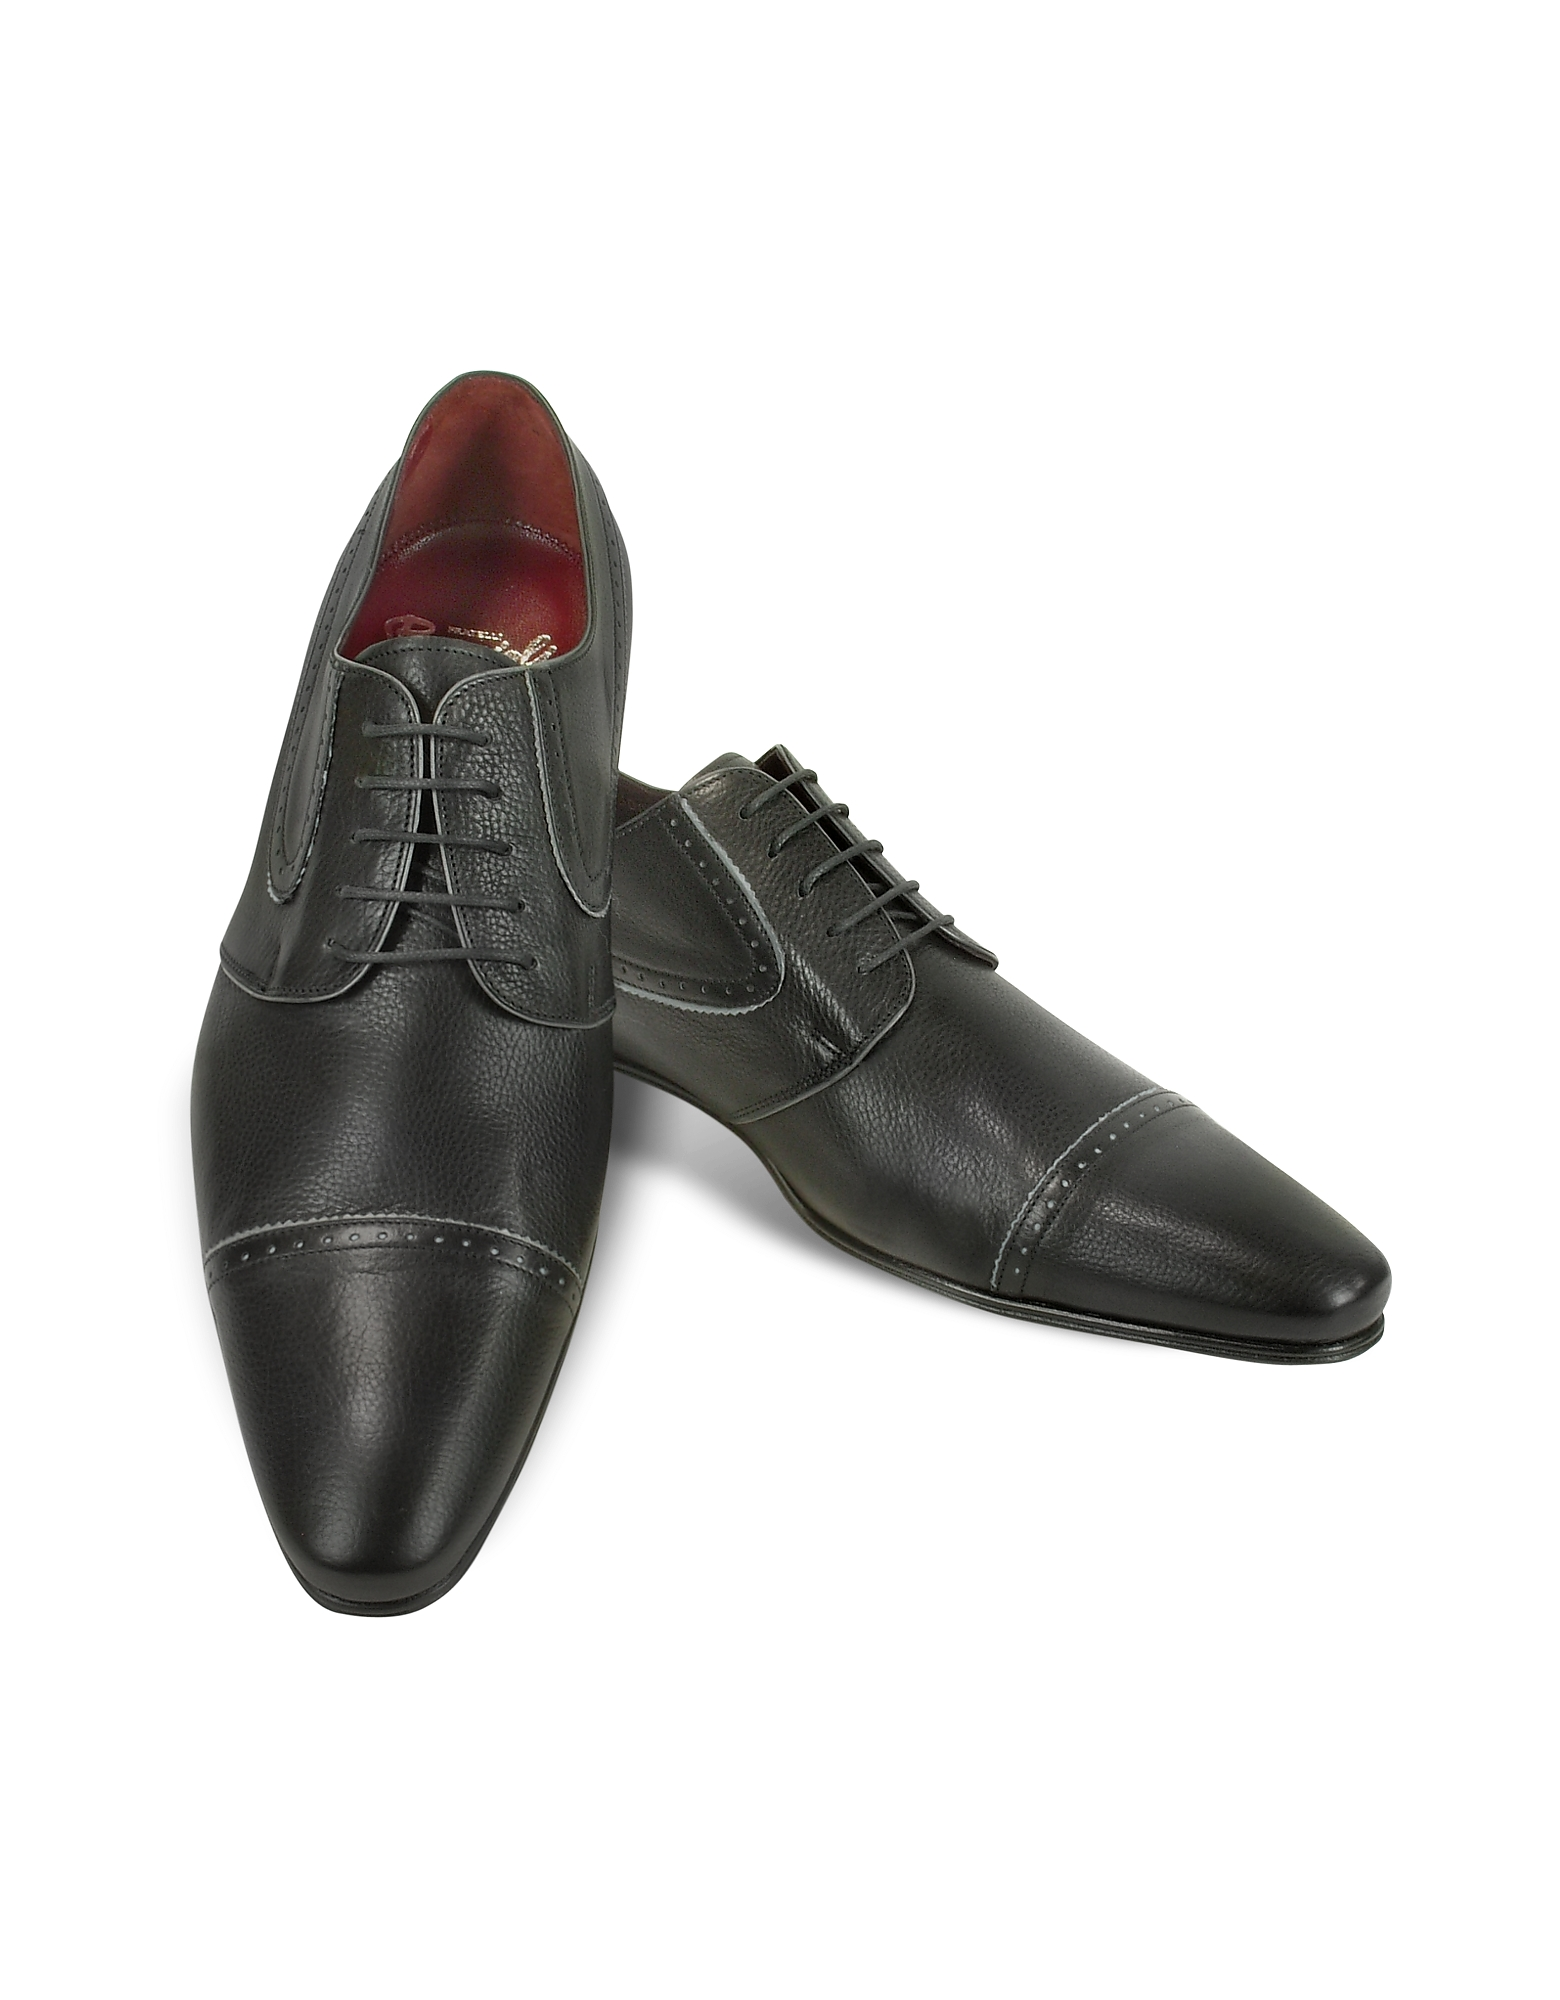 Fratelli Borgioli Shoes, Handmade Black Calf Leather Cap Toe Shoes